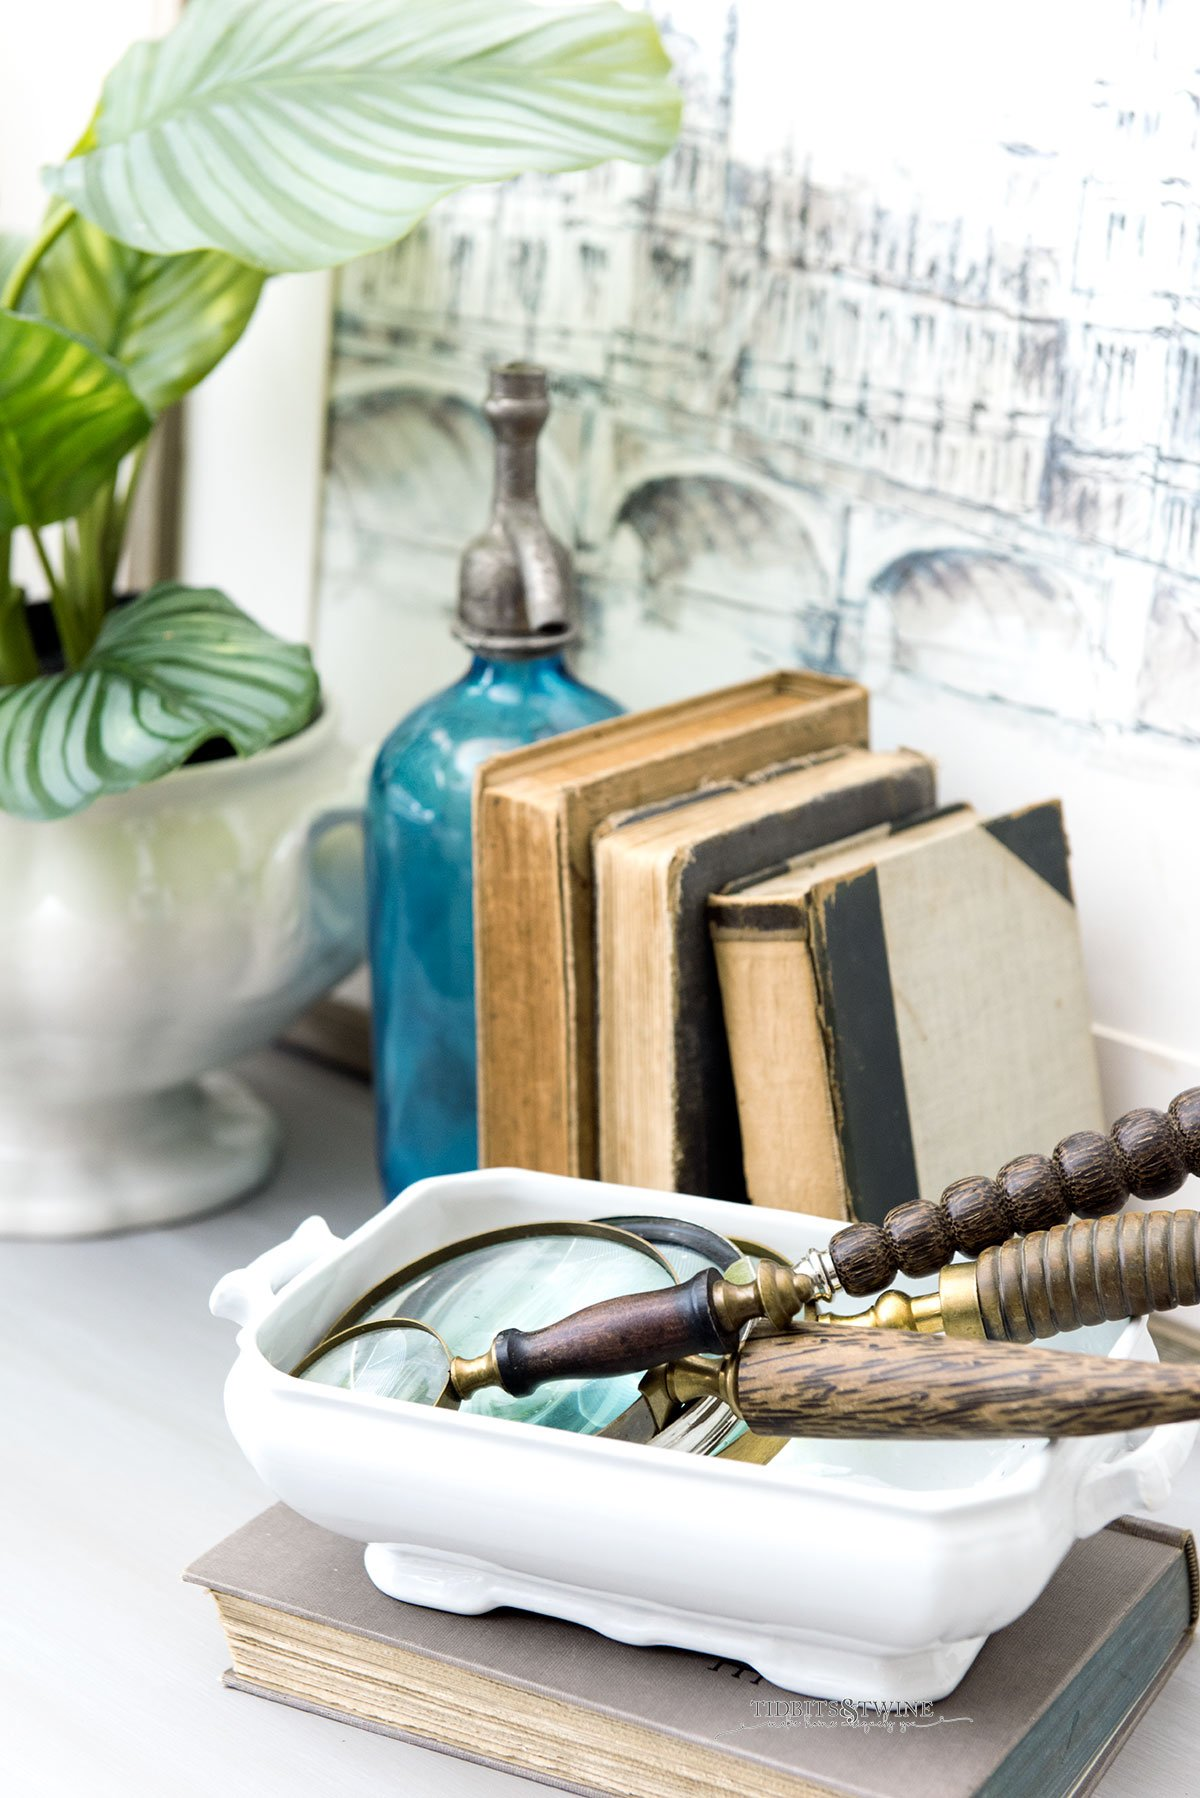 Vignette of antique books next to white pot holding green plant and another white bowl holding antique magnifying glasses